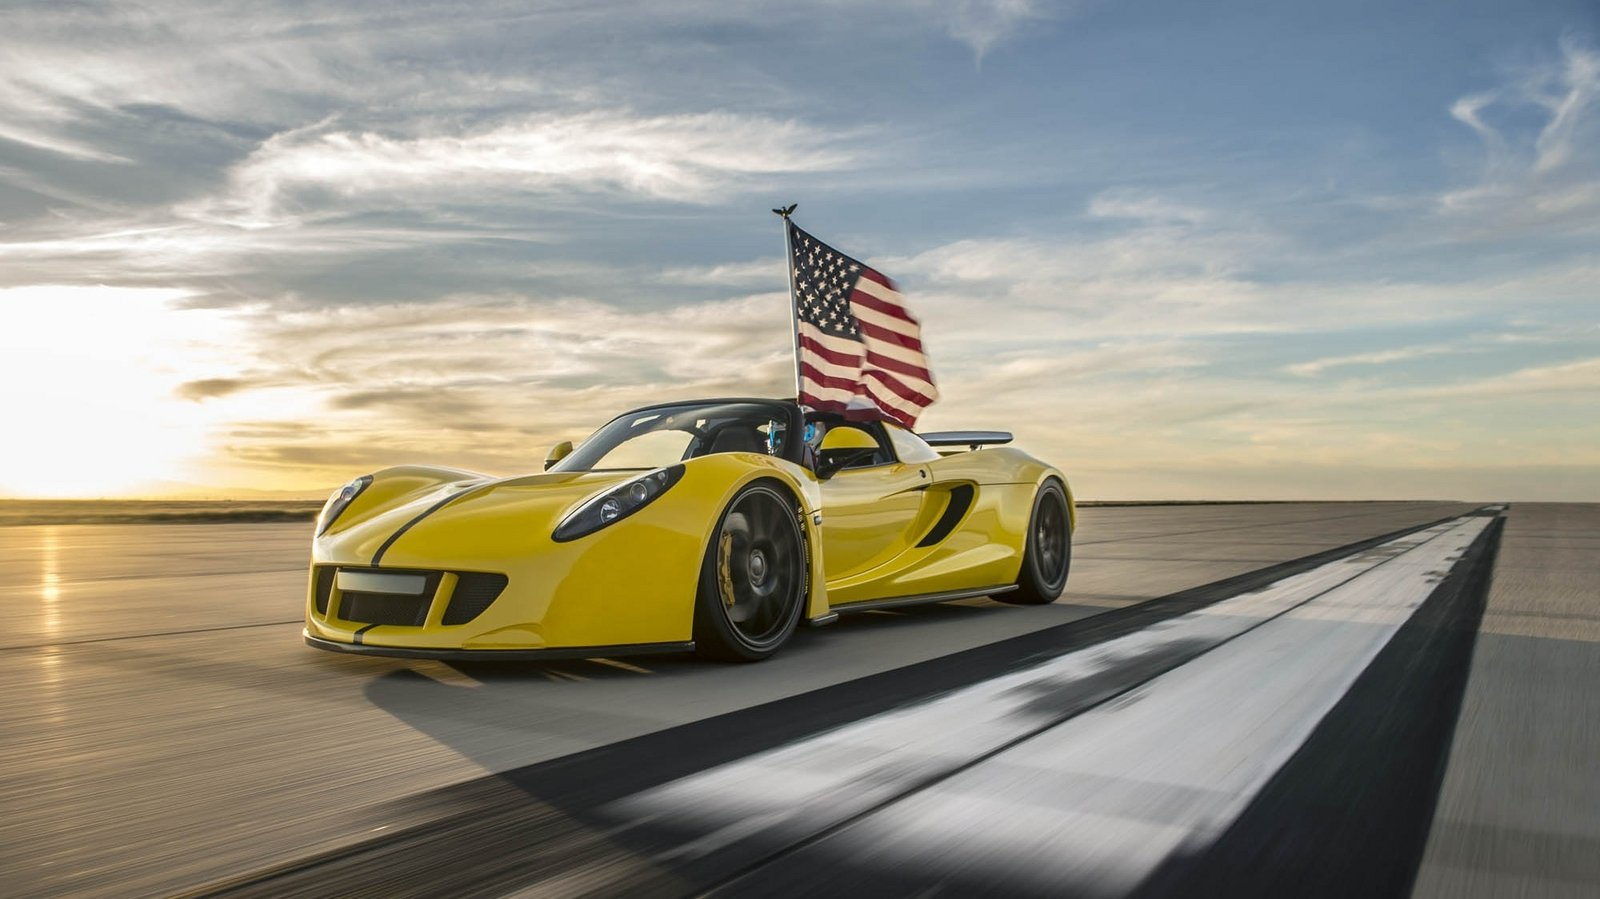 Hennessy Wallpaper Iphone Hennessey Venom Gt Spyder Becomes The World S Fastest